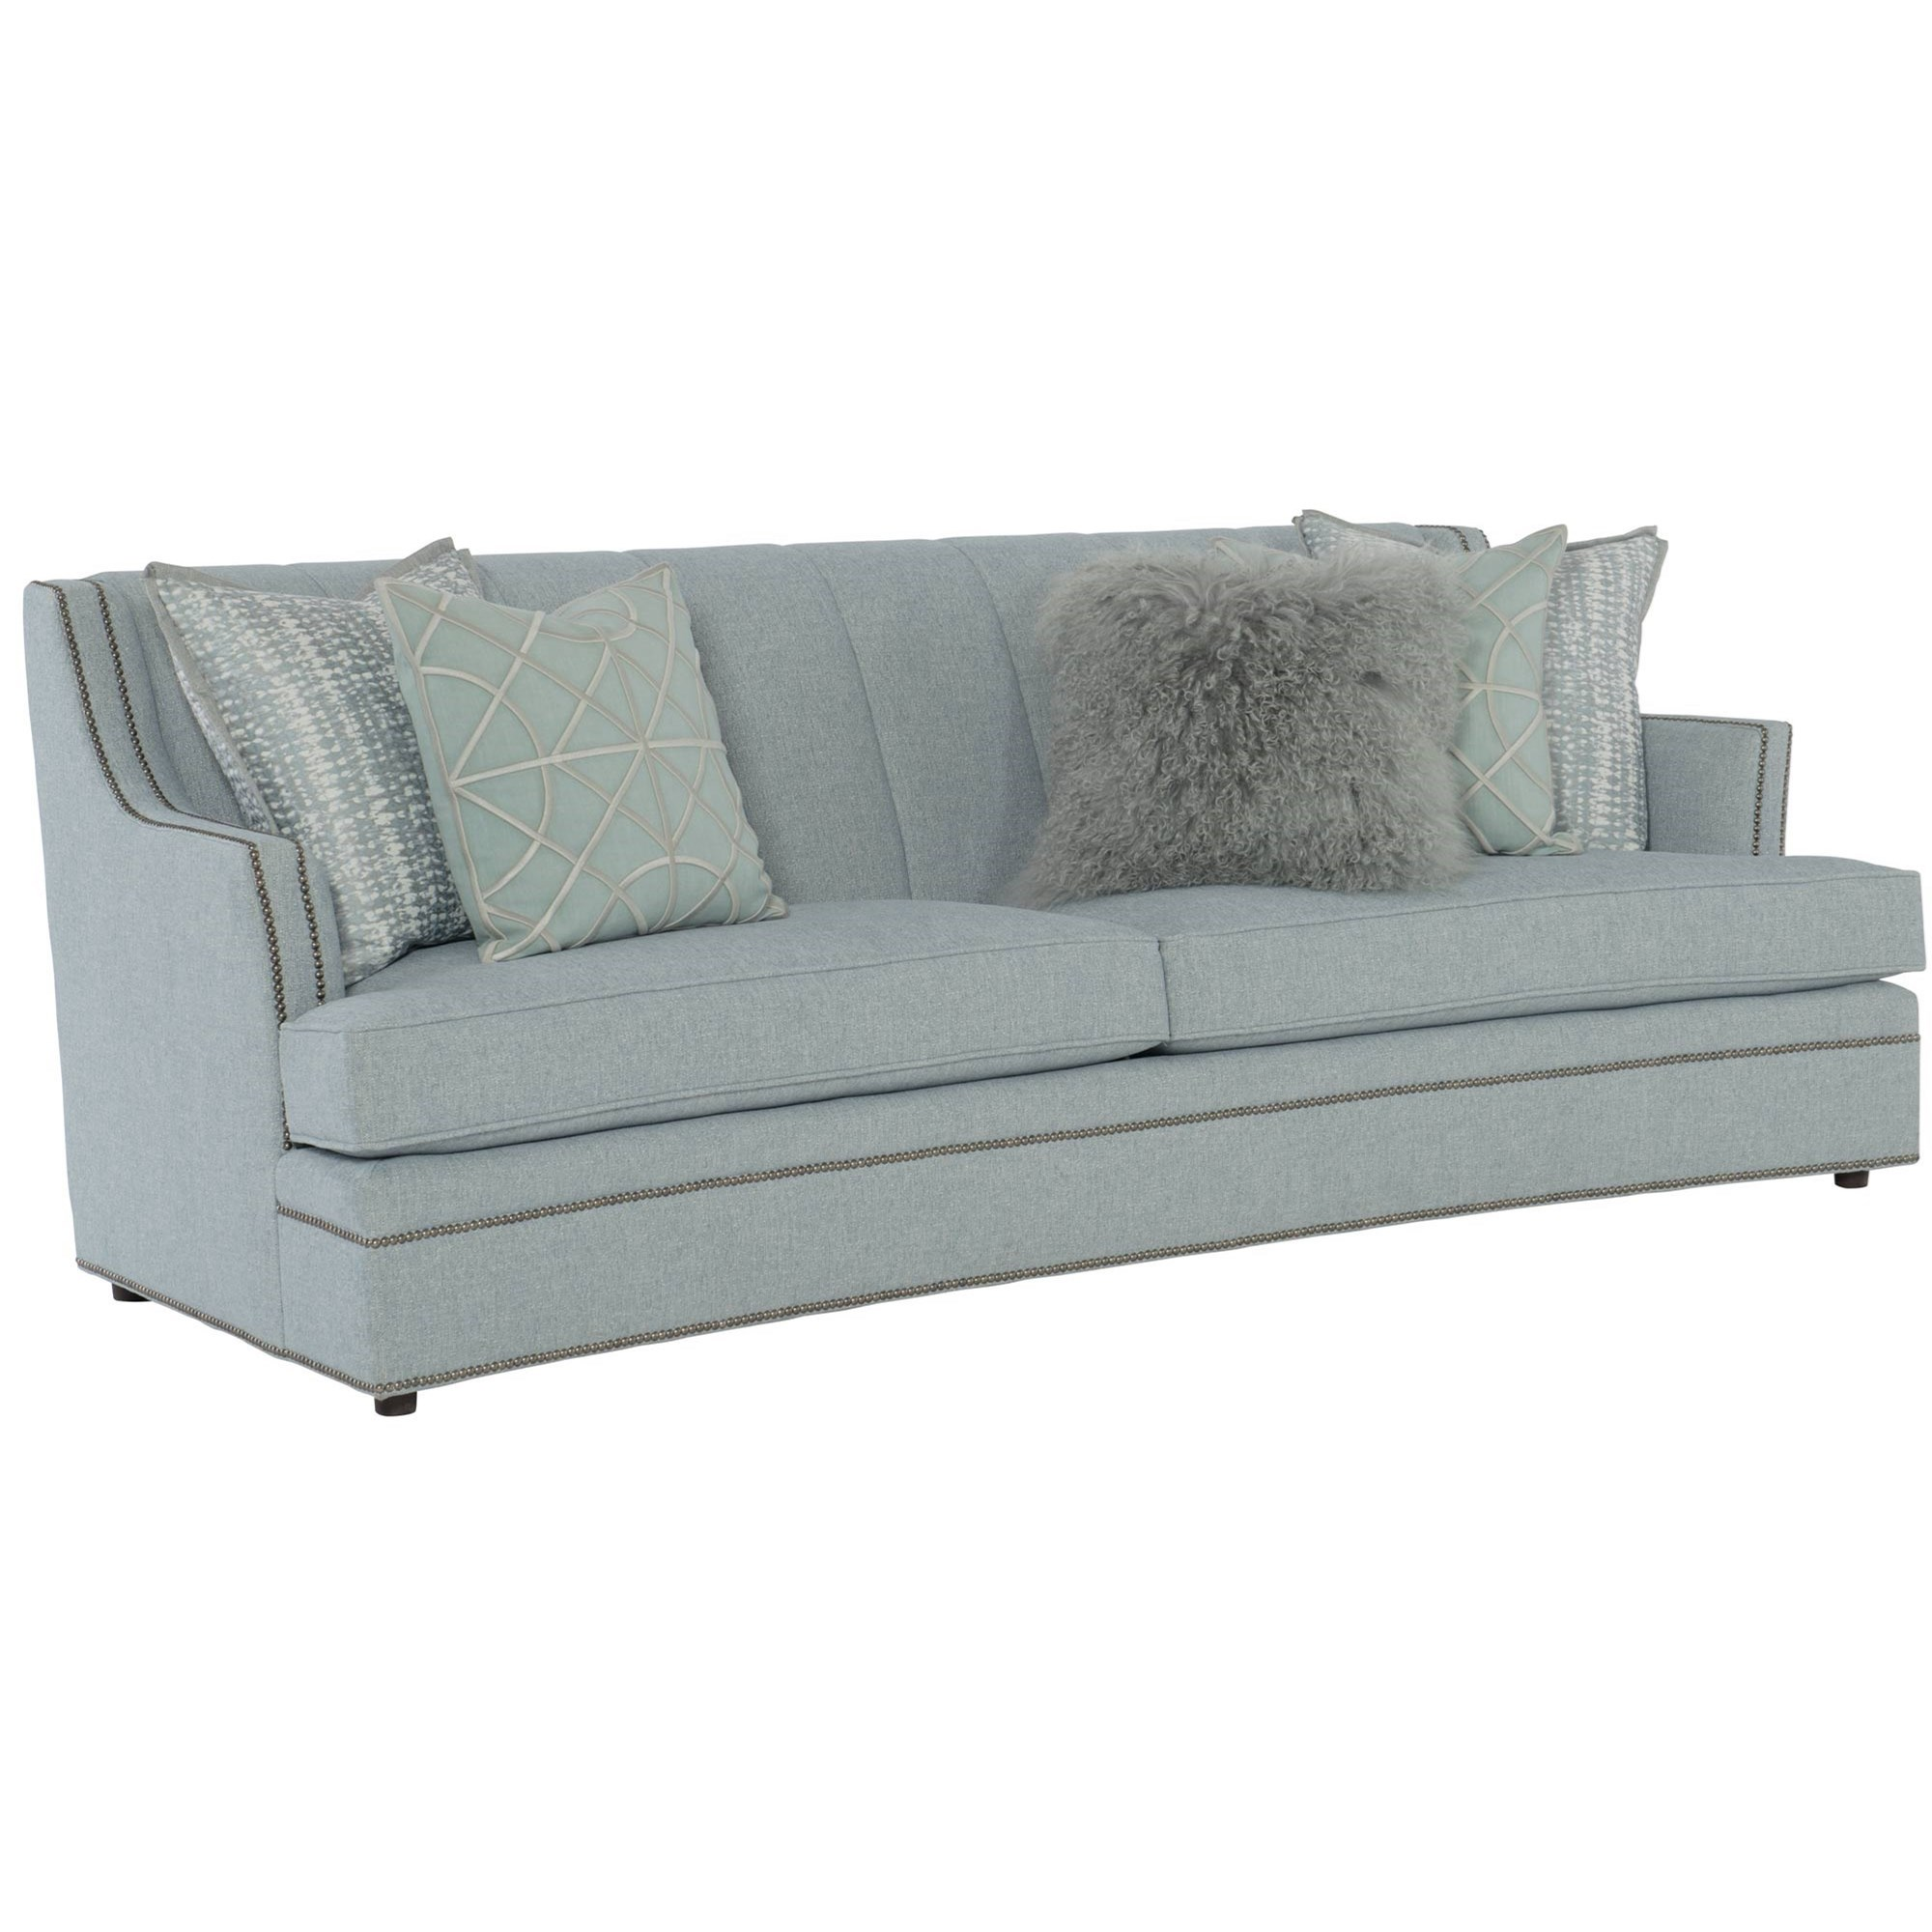 Peachy Bernhardt Fairchild Transitional Channeled Back Sofa With Forskolin Free Trial Chair Design Images Forskolin Free Trialorg